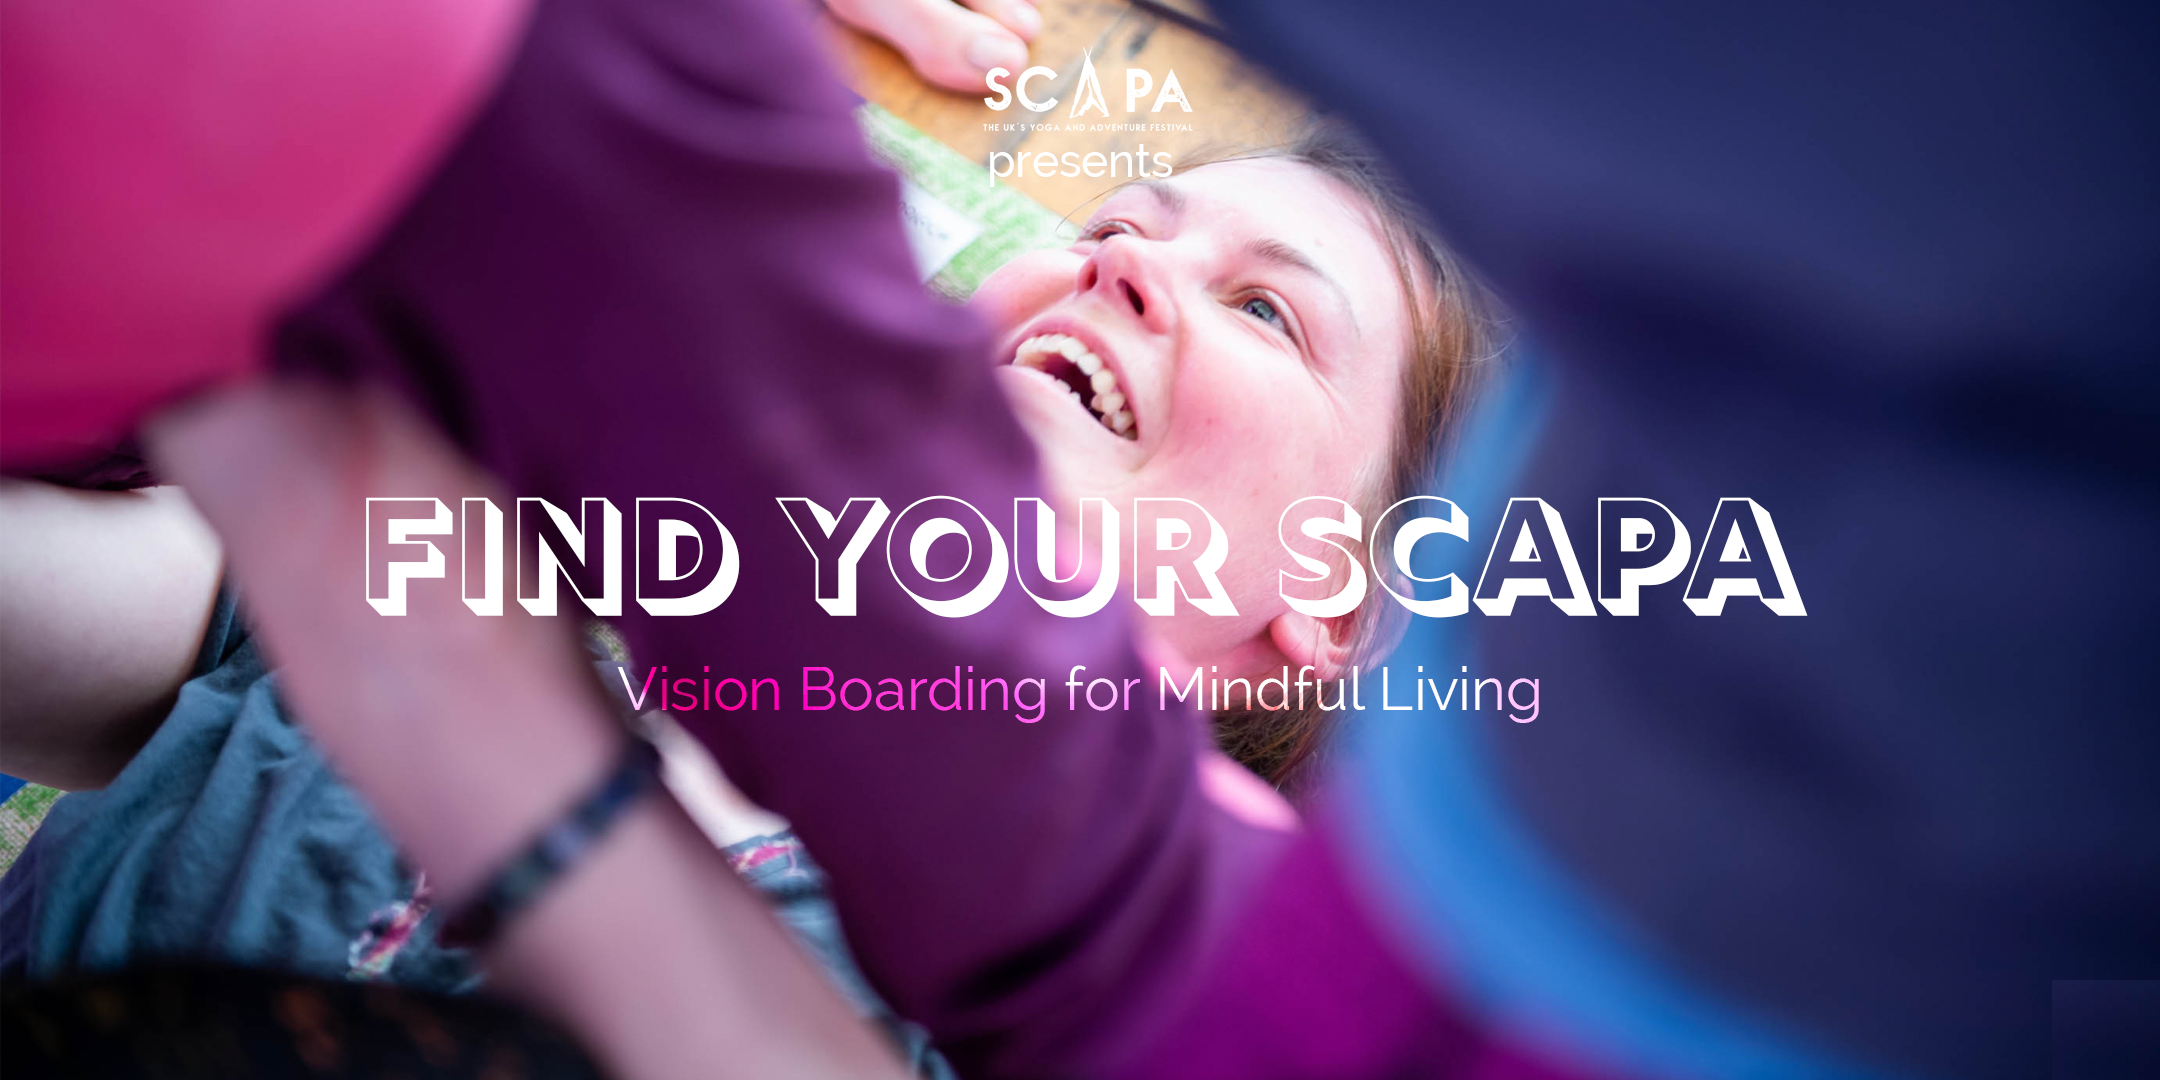 find-your-scapa-vision-boarding